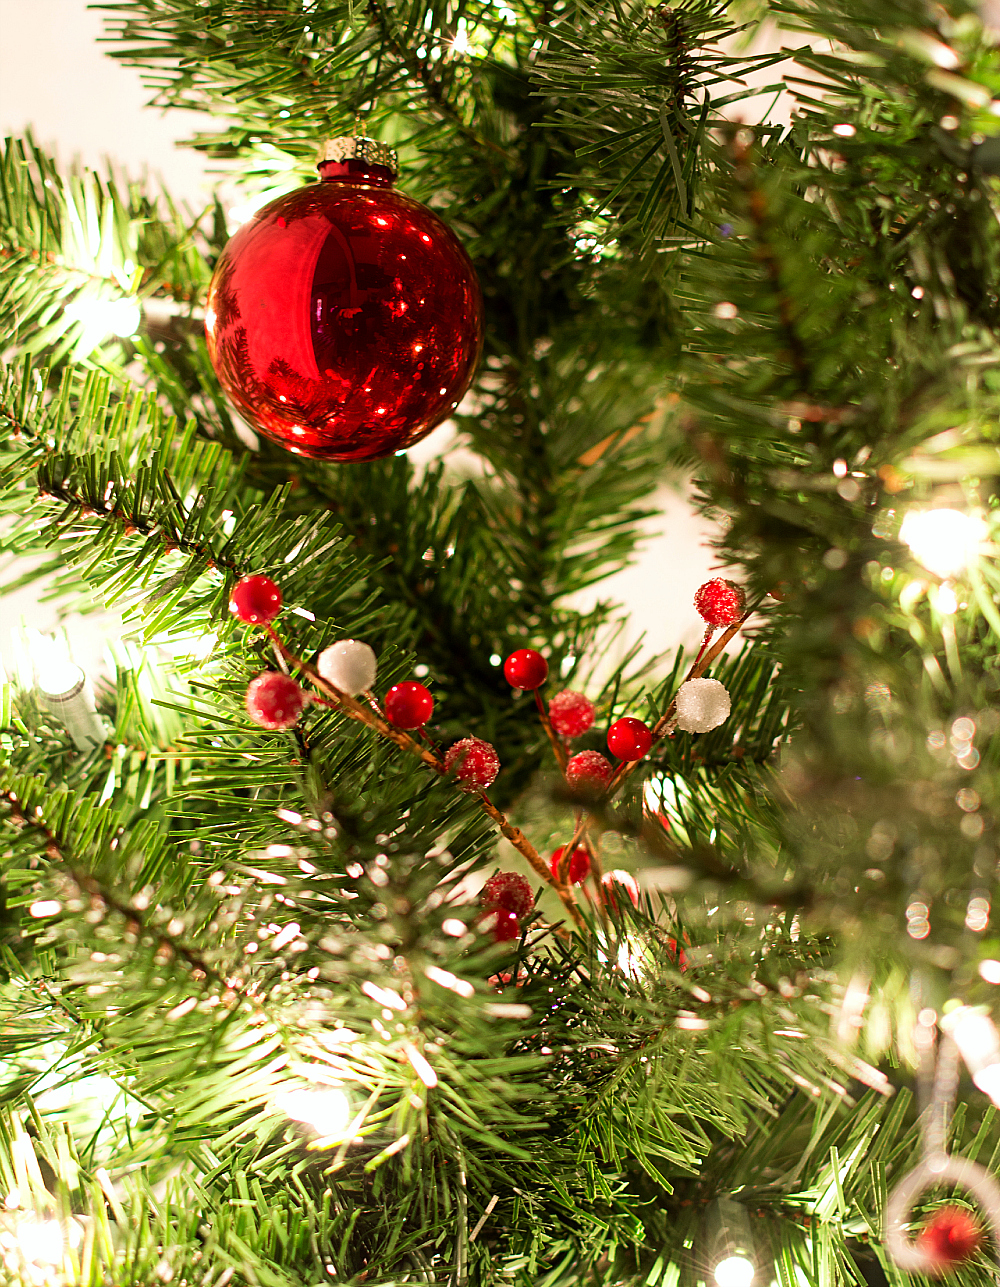 Christmas-Tree-Red-White-Ornaments (9 of 17)